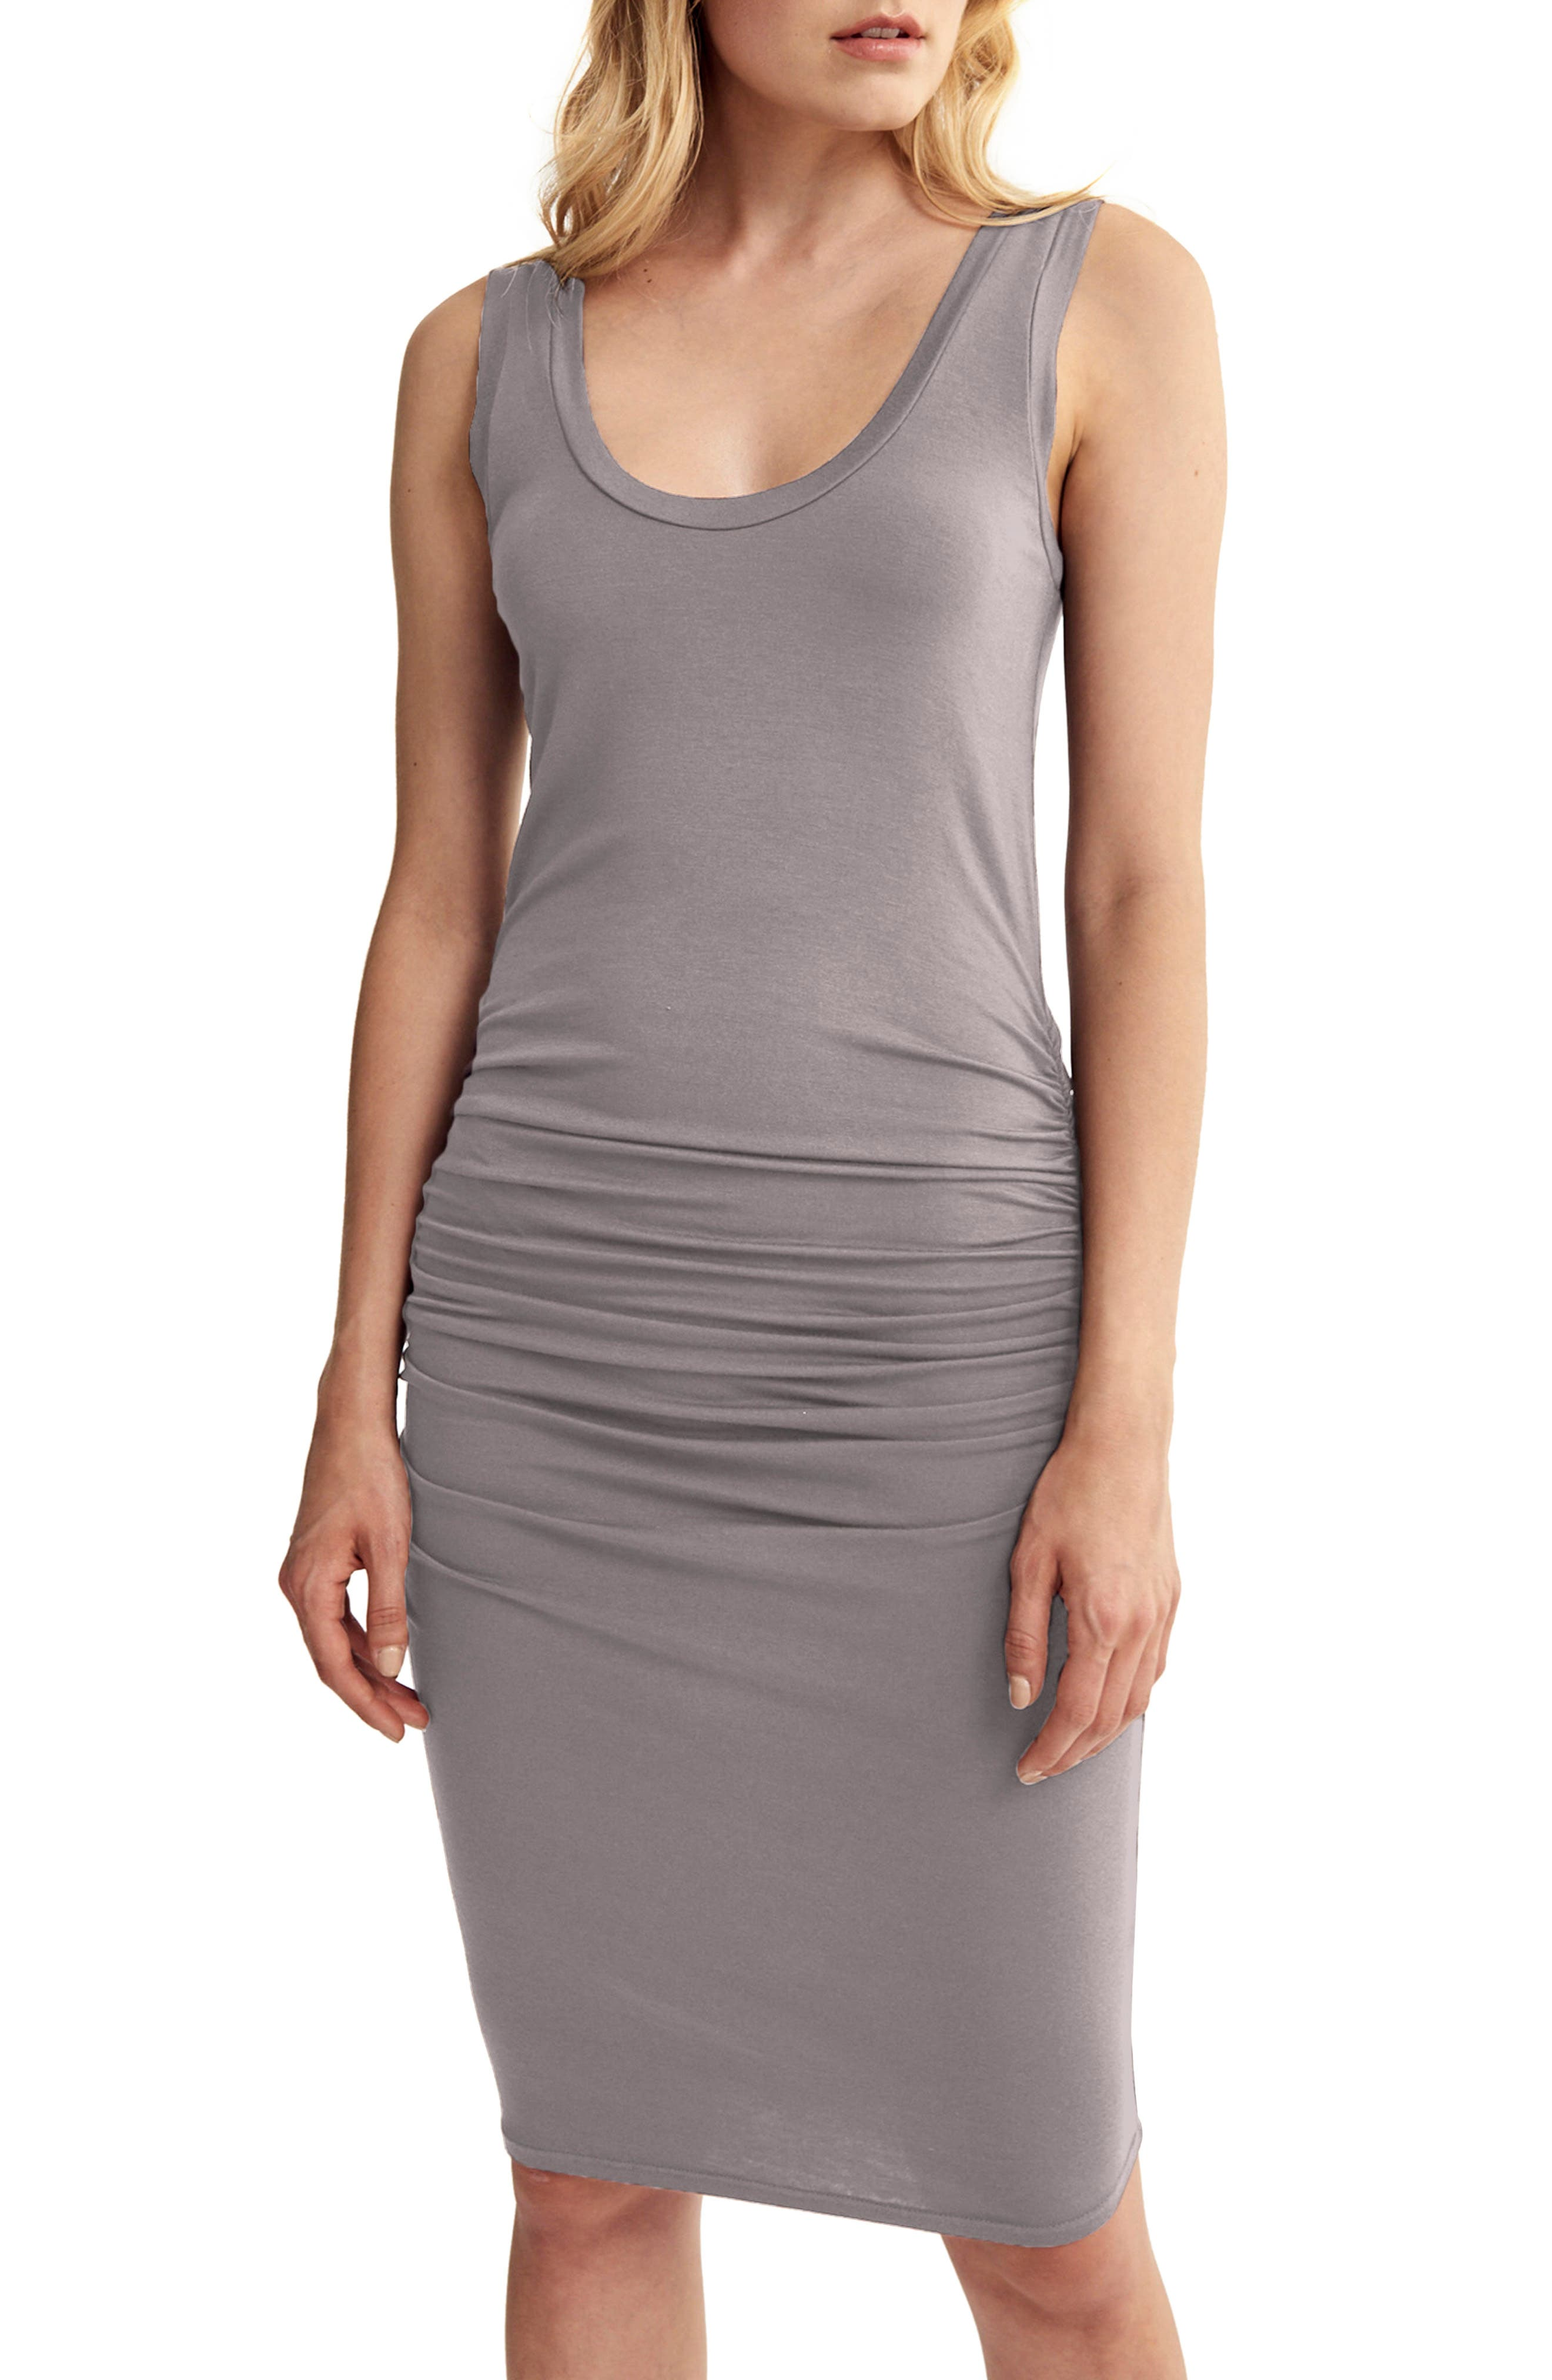 'Frankie' Ruched Tank Dress,                             Main thumbnail 1, color,                             Peppercorn